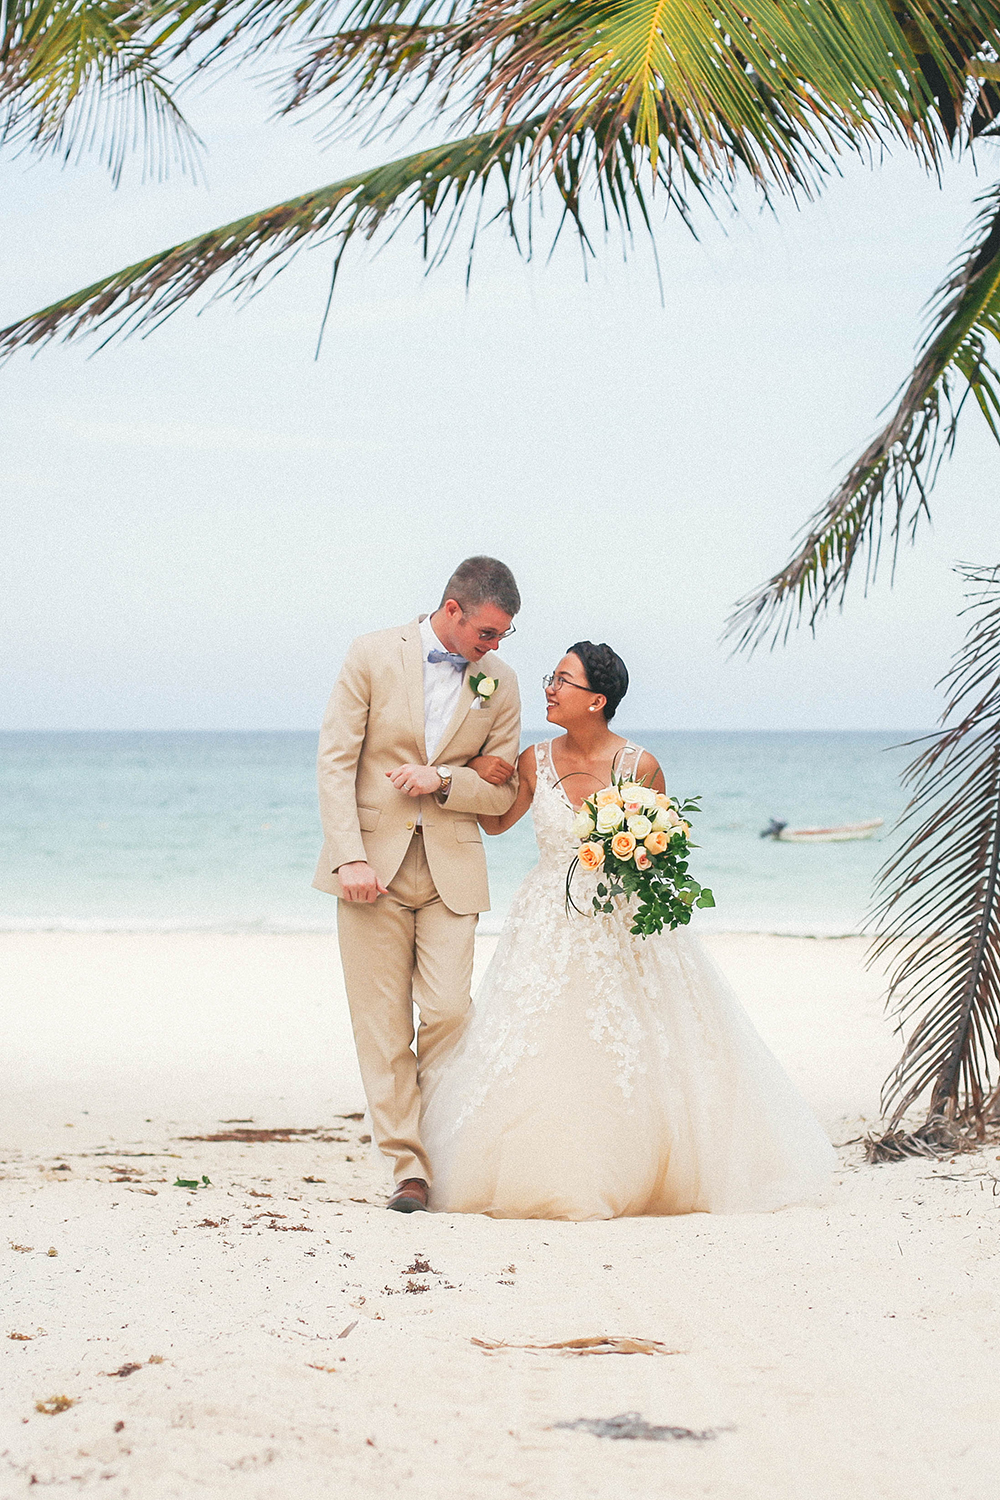 Secrets Maroma Wedding - Destination Wedding in Mexico